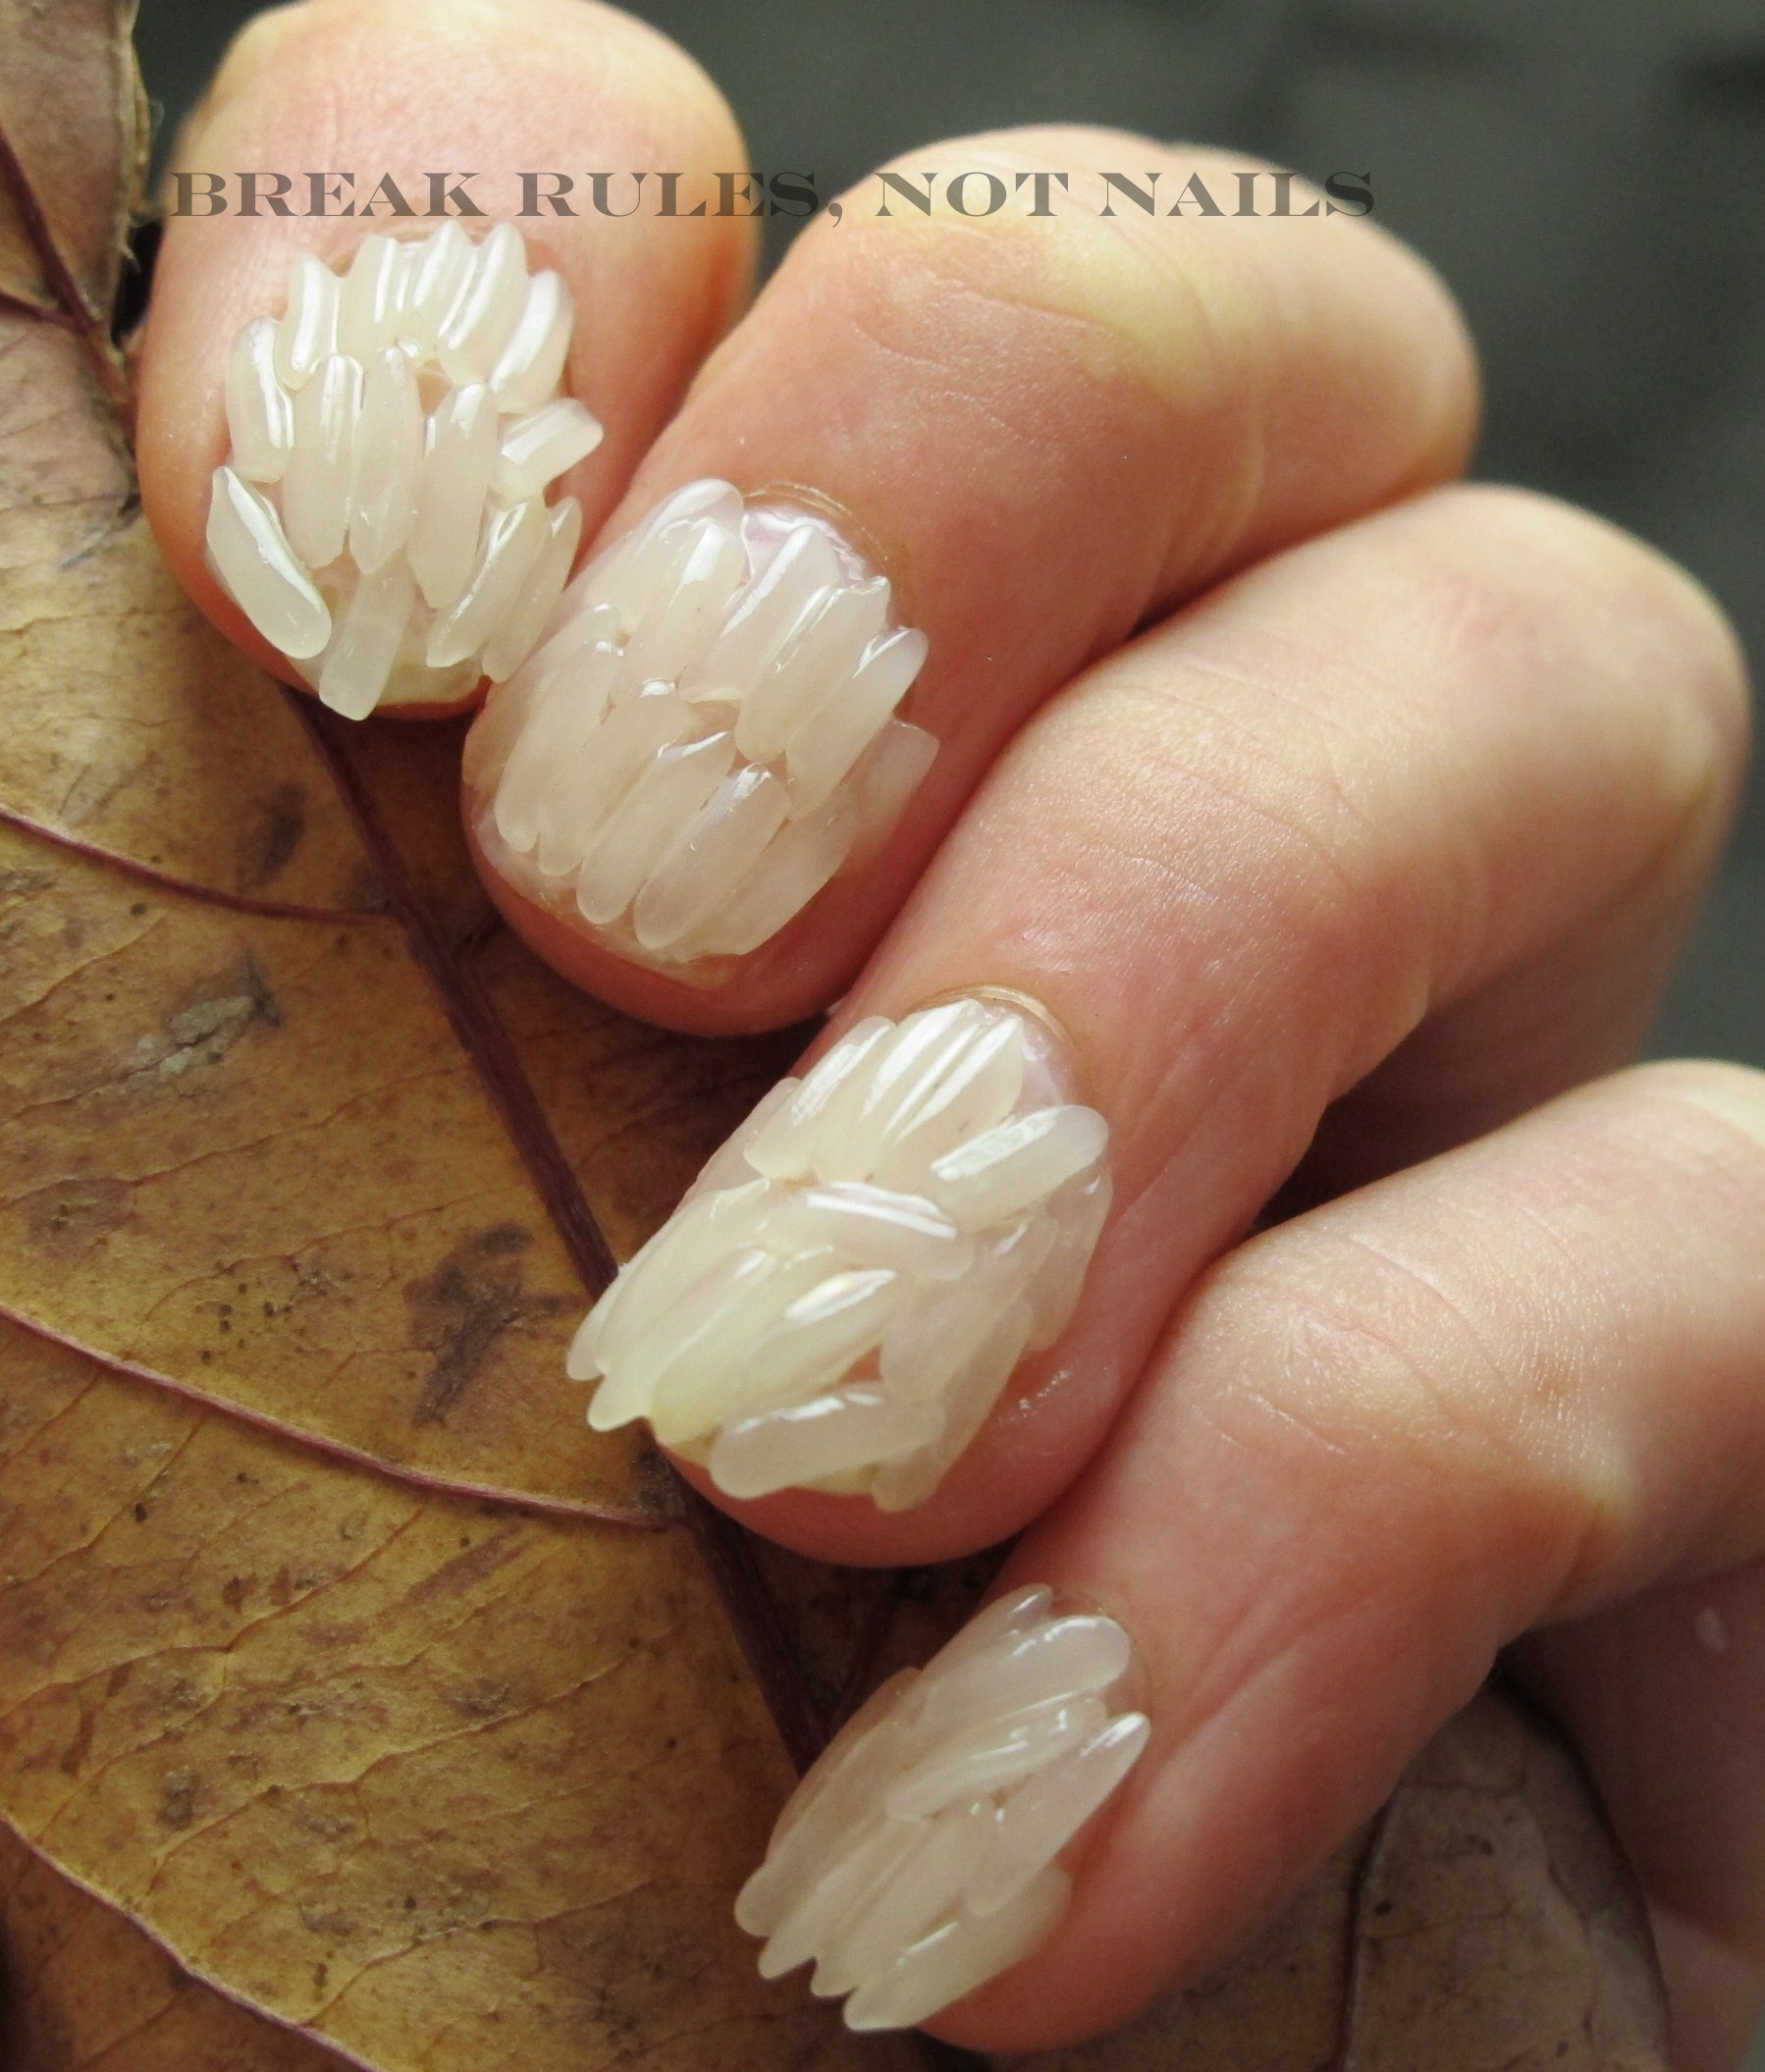 Rice Nail Art Break Rules Not Nails